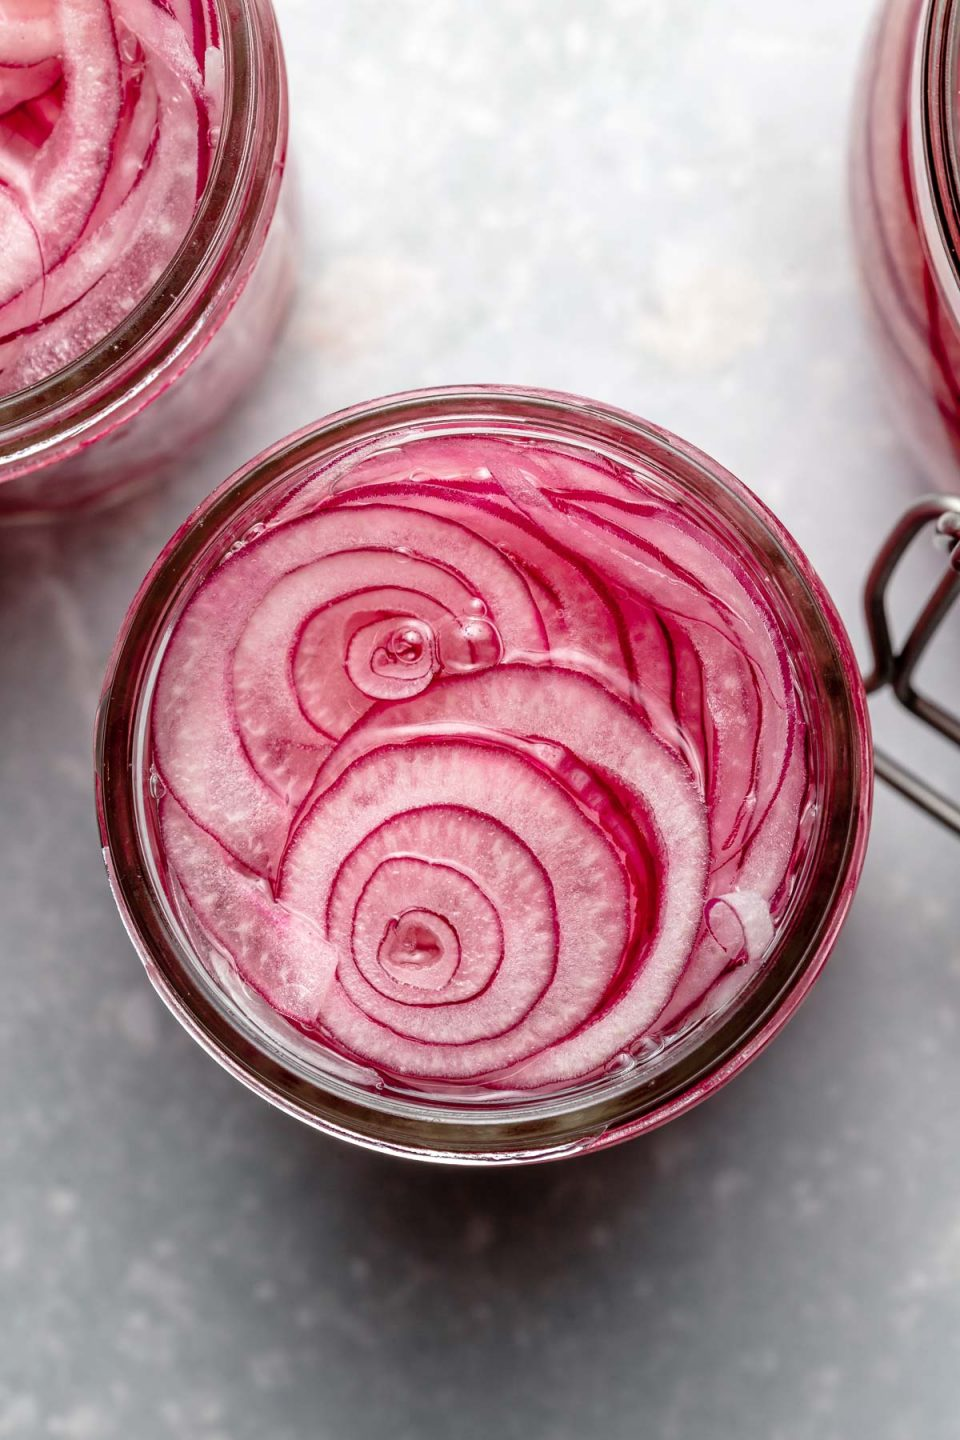 An overhead shot of thinly sliced rings of red onion inside of a mason jar and submerged in pickling liquid. The jar is set on a light blue surface. 2 other jars of easy pickled red onions are also partially shown.